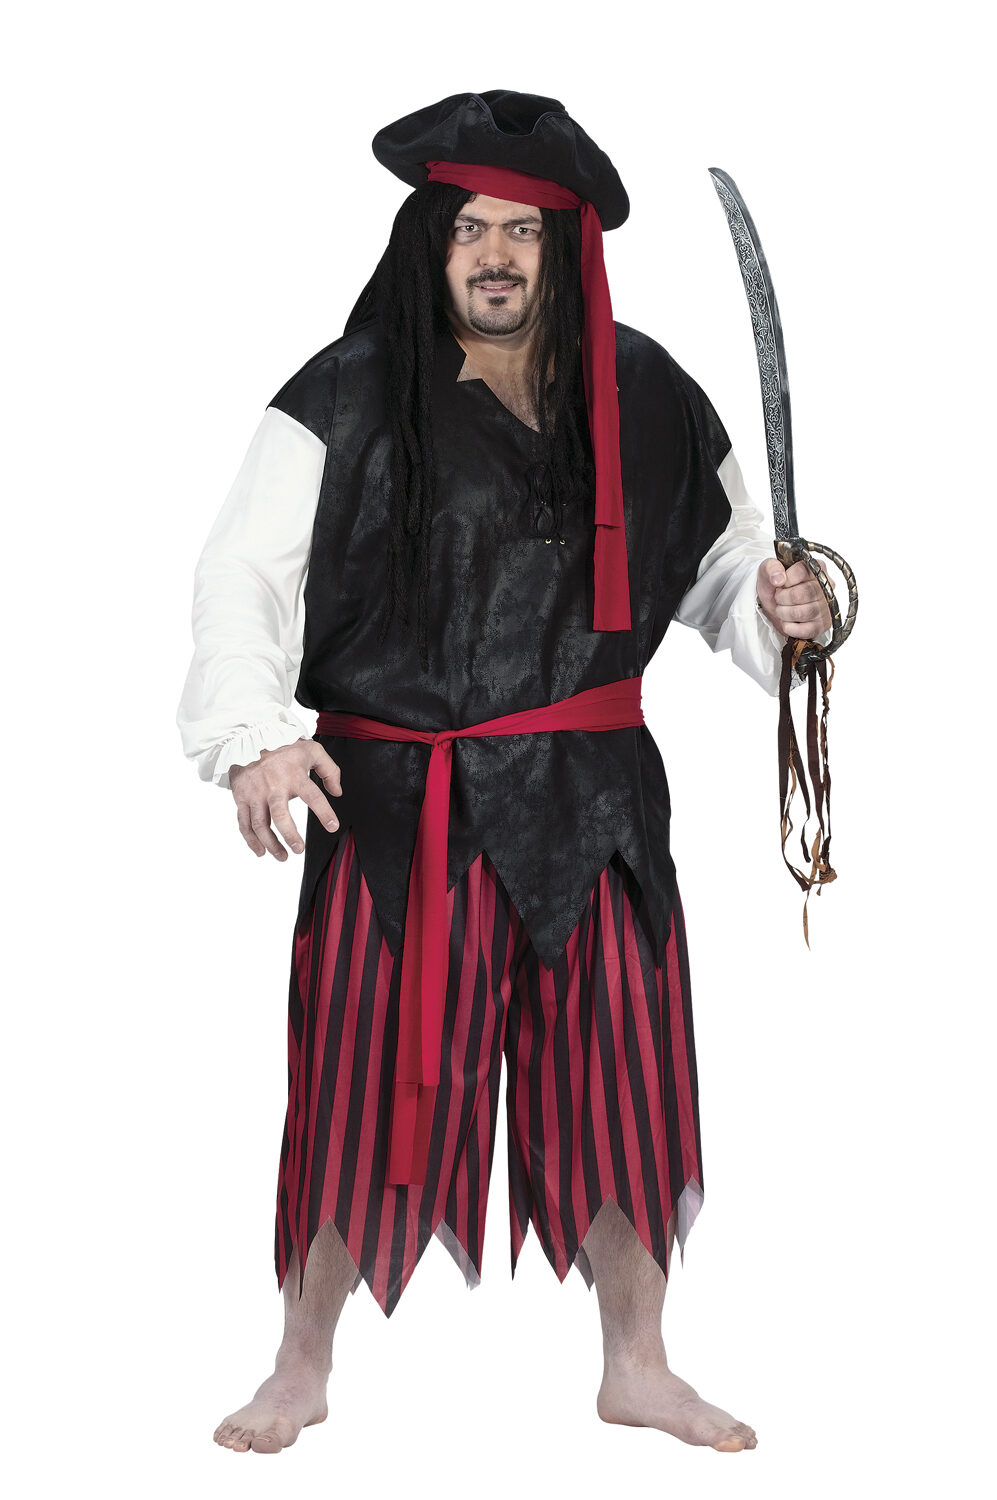 Plus Size Halloween Costumes - Mr. Costumes